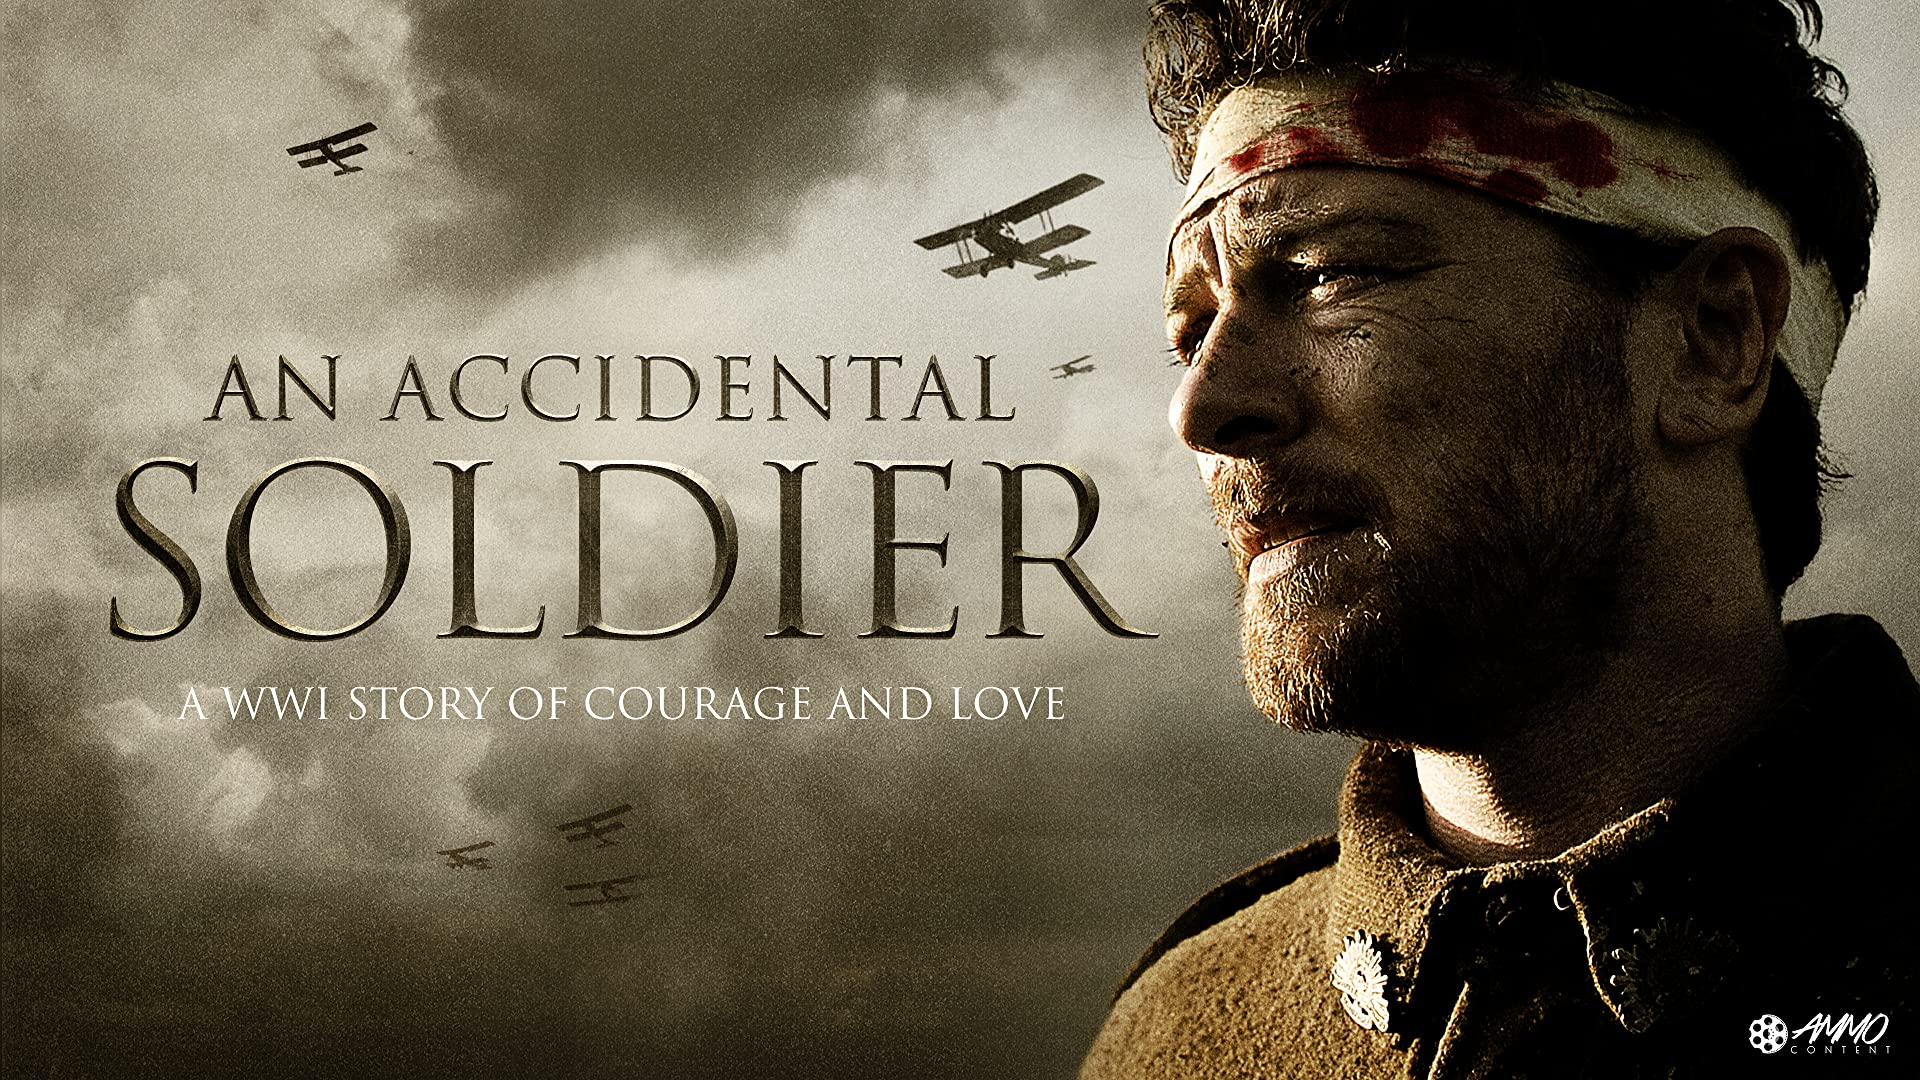 An Accidental Soldier